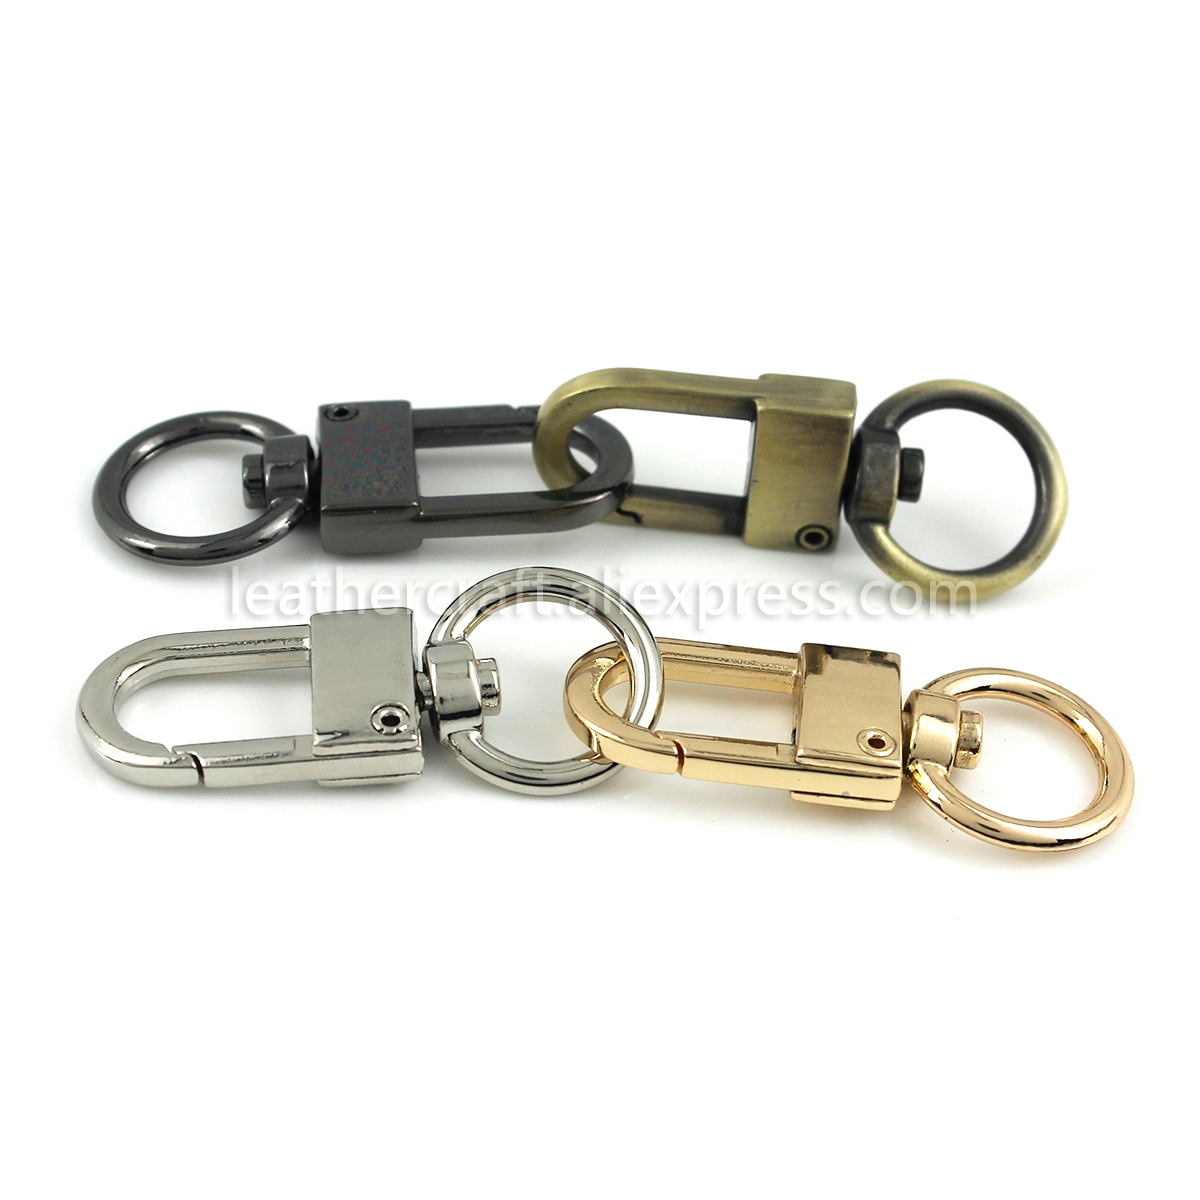 1pcs Solid Brass trigger Snap Hook Leather craft Bag Keychain buckle